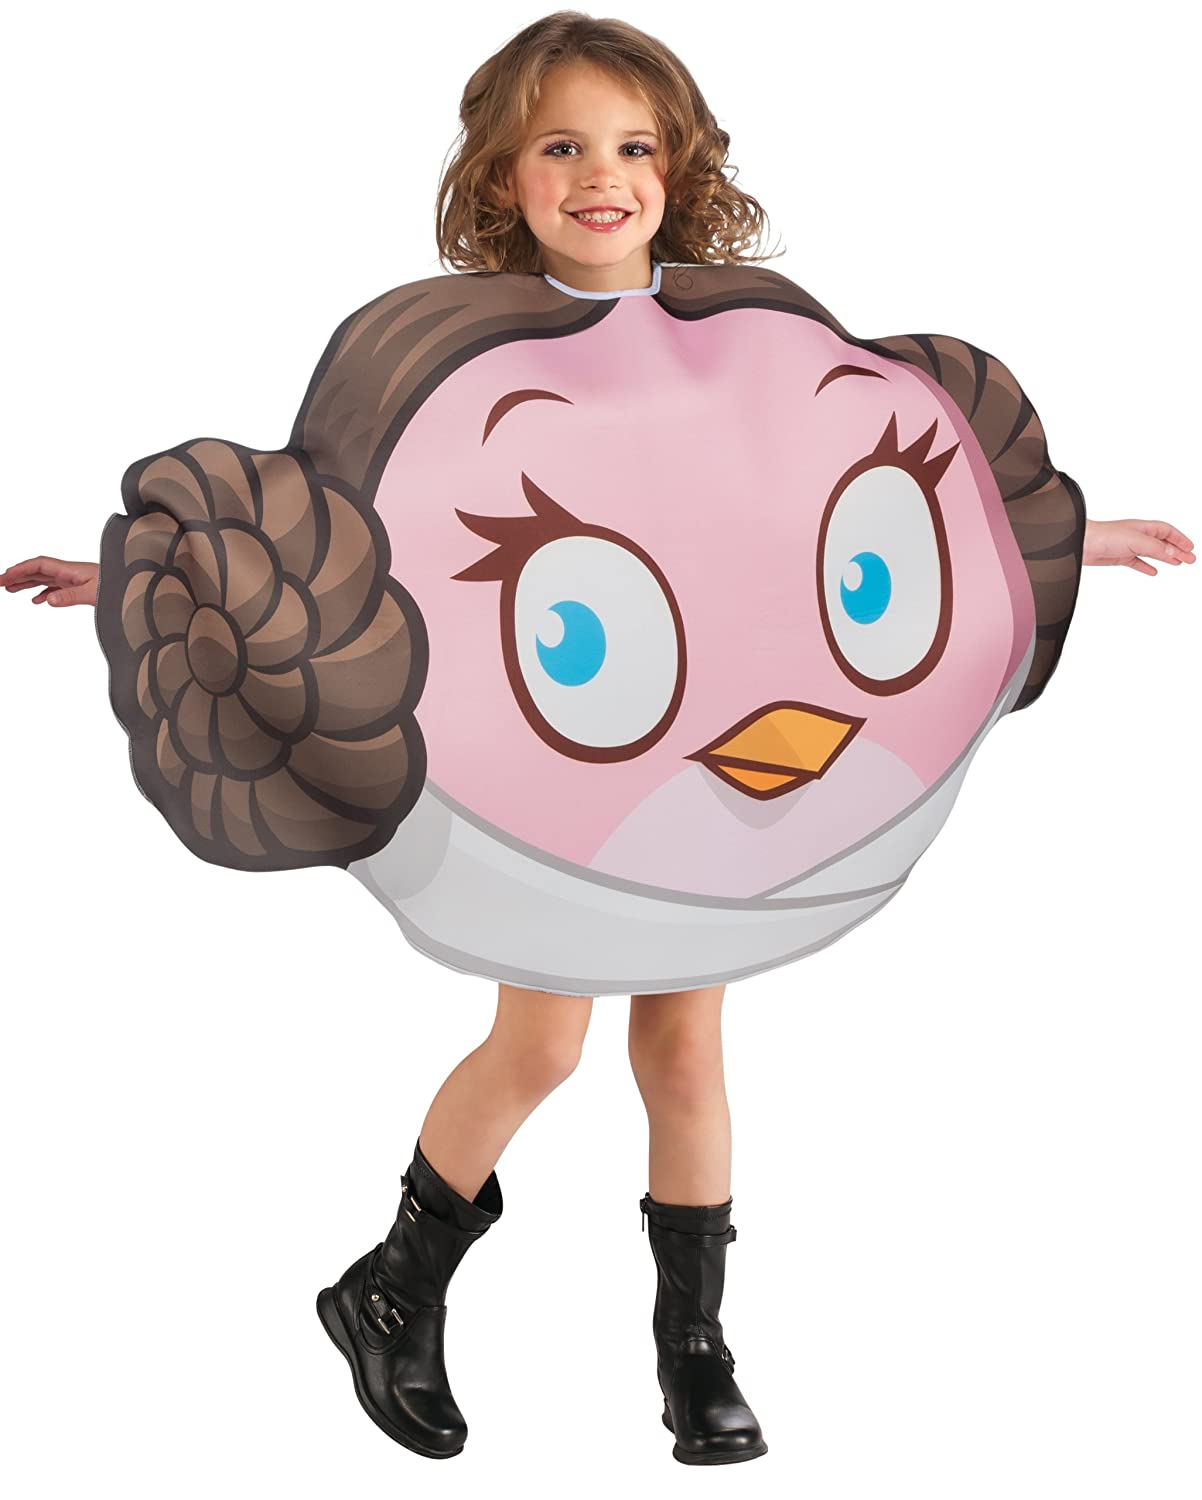 Amazon.com: Angry Birds Star Wars Princess Leia Child's Costume ...